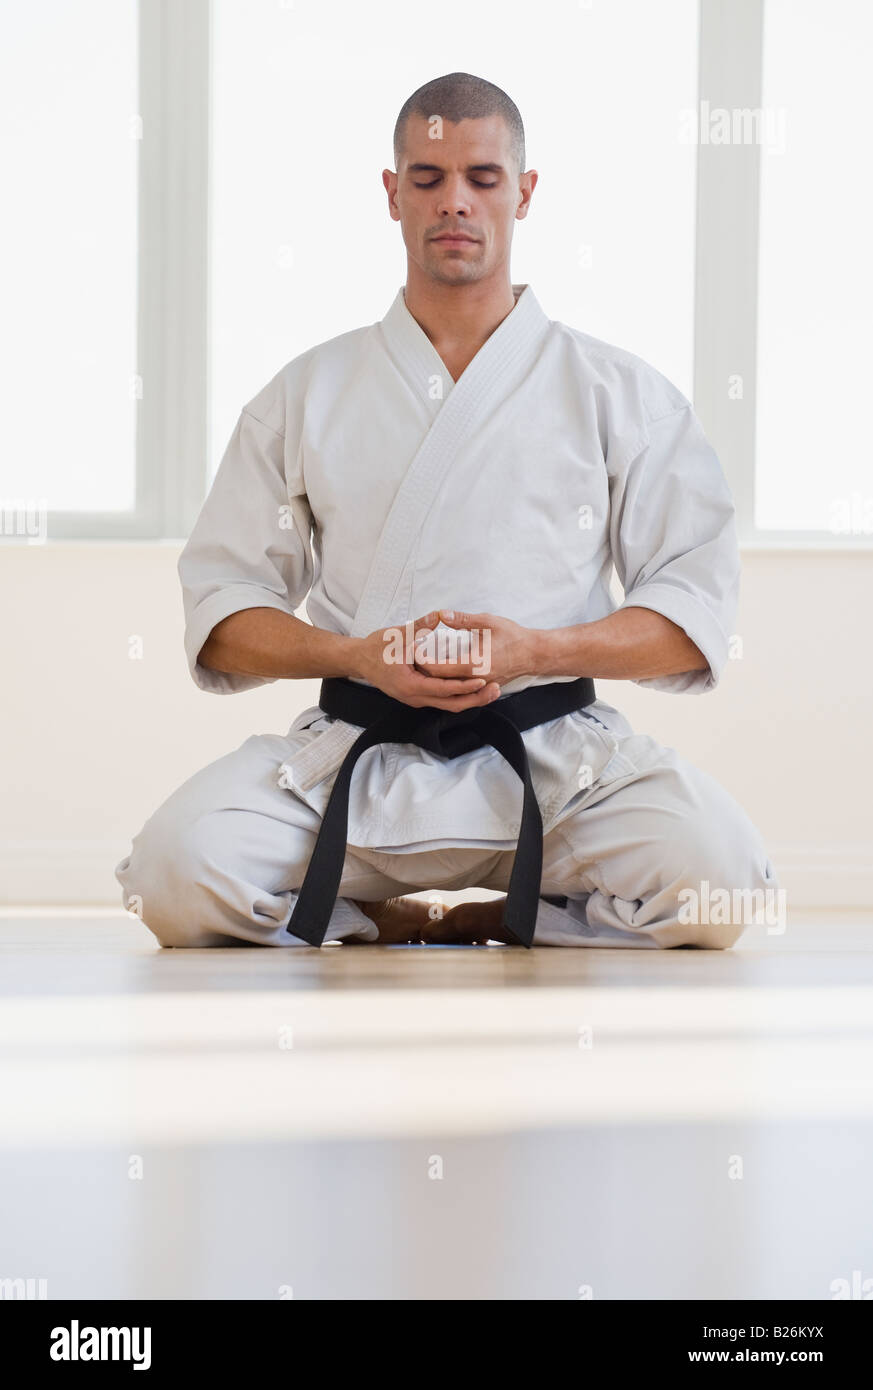 Hispanic male karate black belt meditating - Stock Image